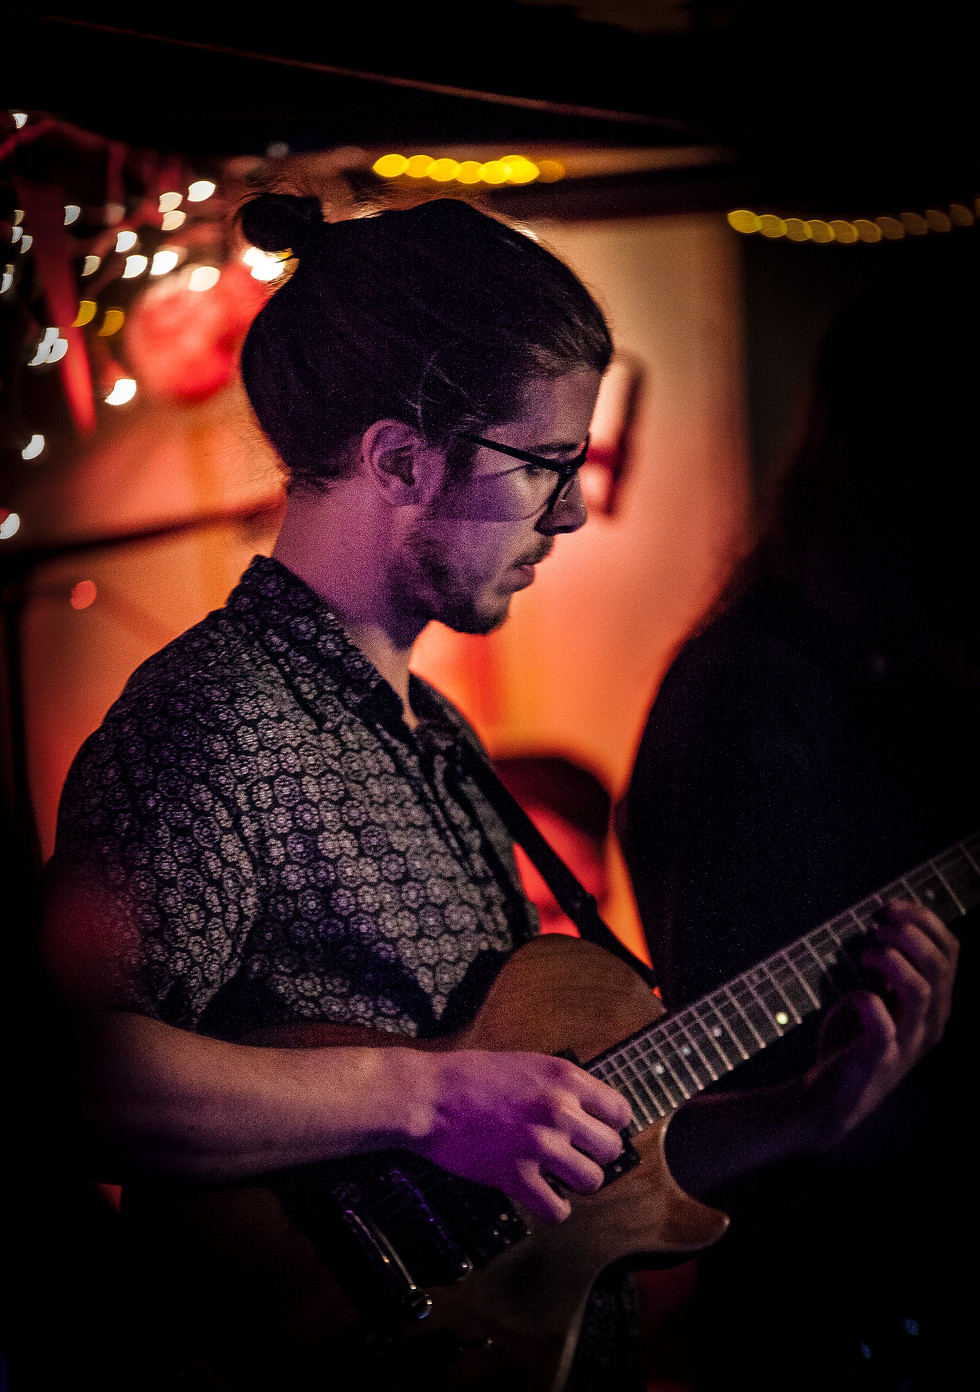 Art Baker, one of two guitarists in the group.